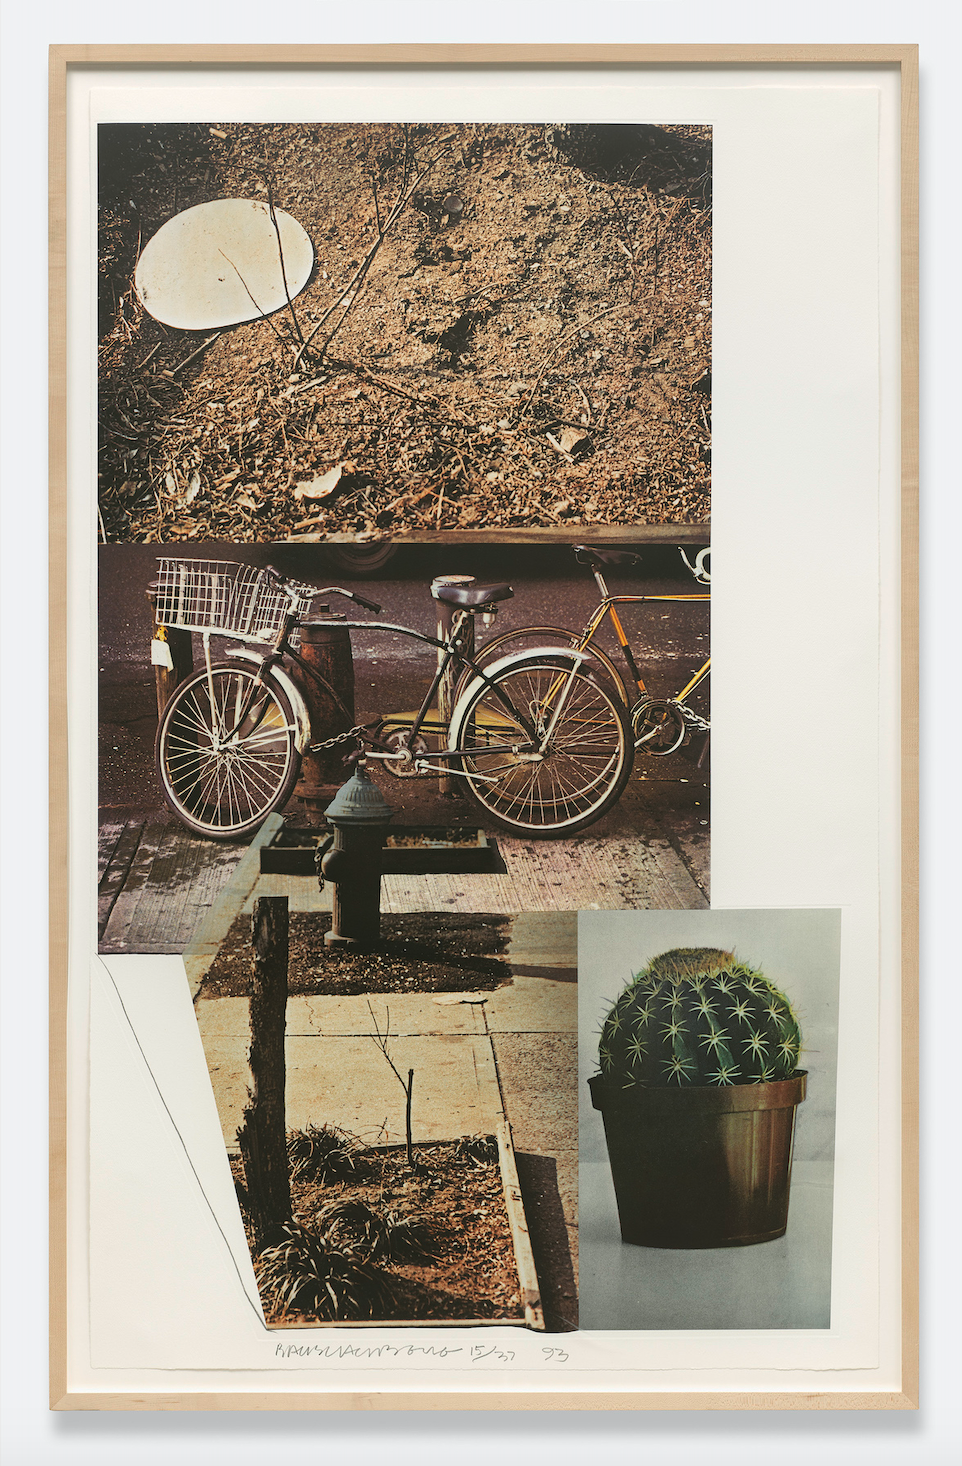 Street Sounds West, 1993, intaglio print in 8 colours with photogravure on paper, 143.5 x 88.3cm © Robert Rauschenberg Foundation licensed by DACS London.